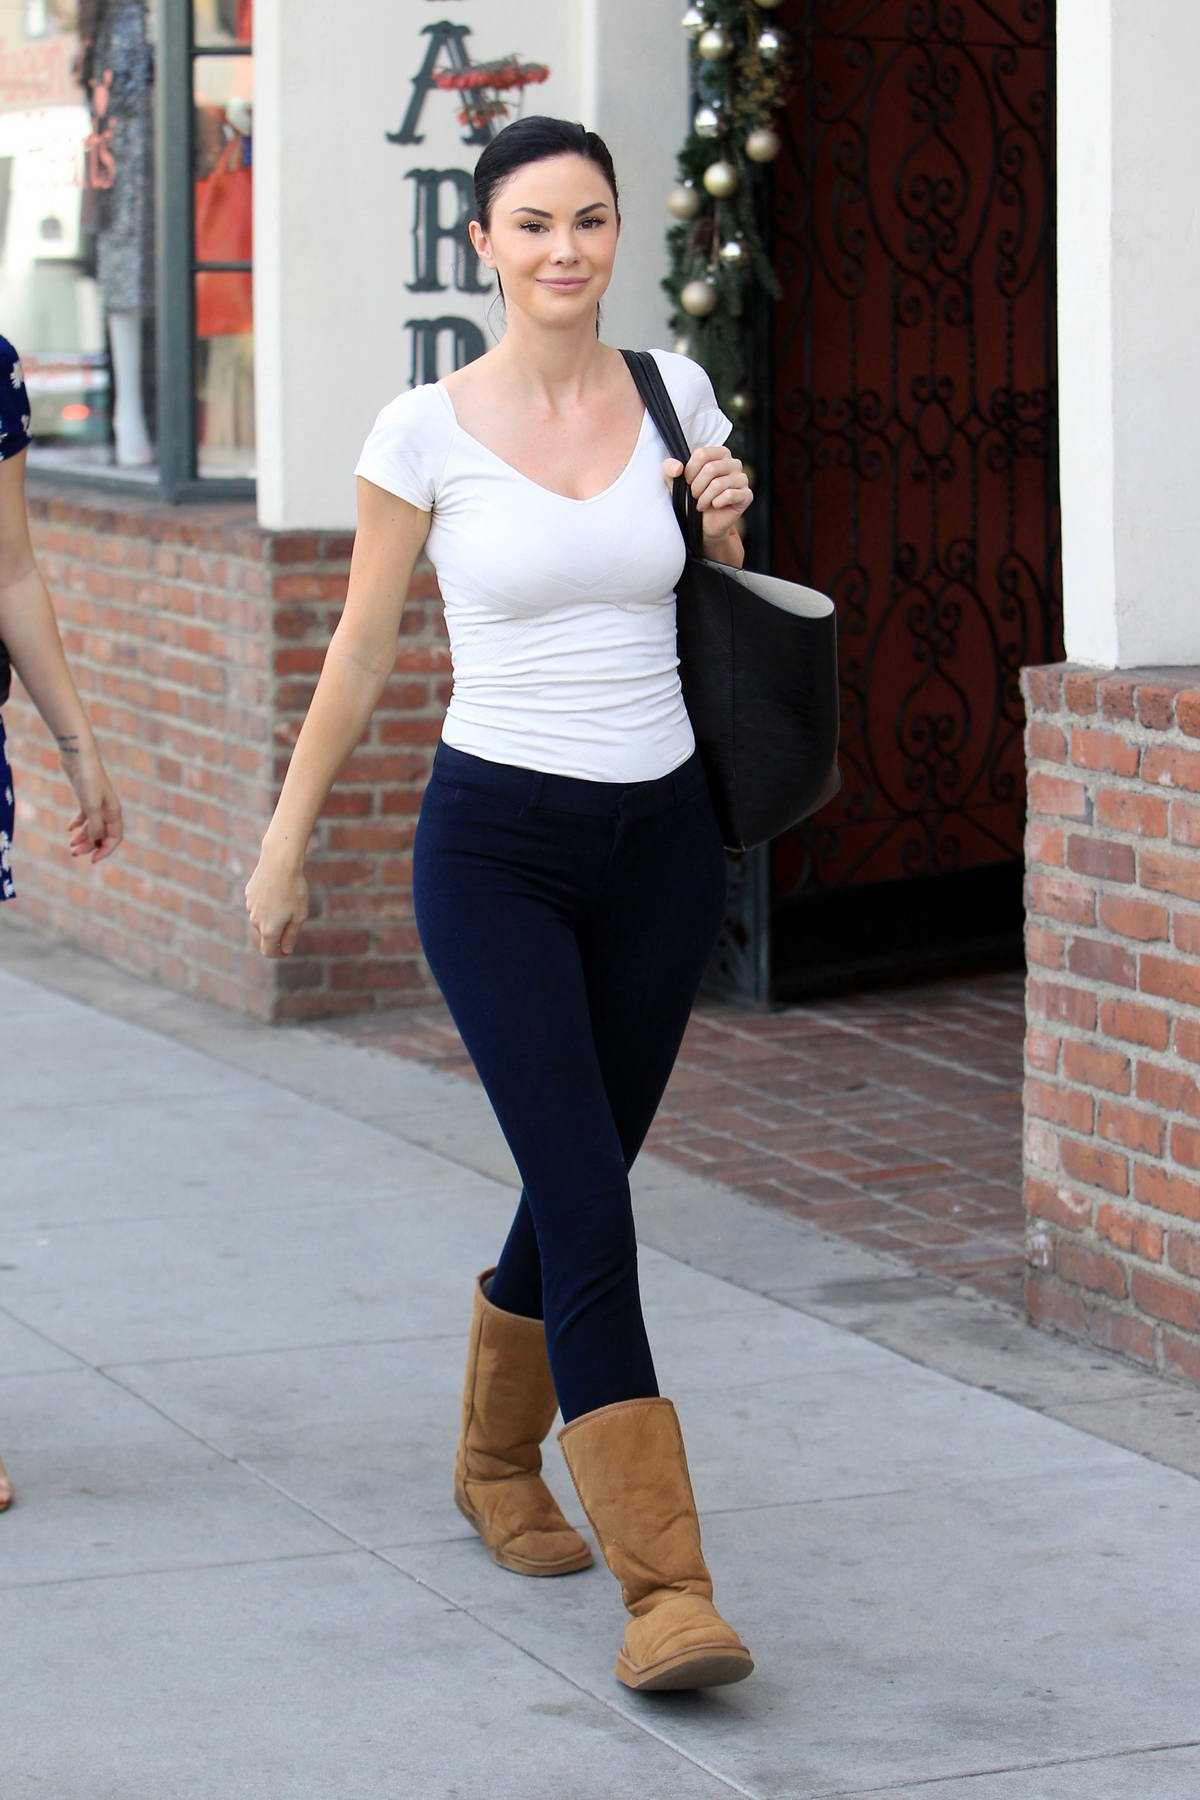 Jayde Nicole steps out in a white top, leggings and UGG boots as she grabs lunch with friends in Beverly Hills, Los Angeles